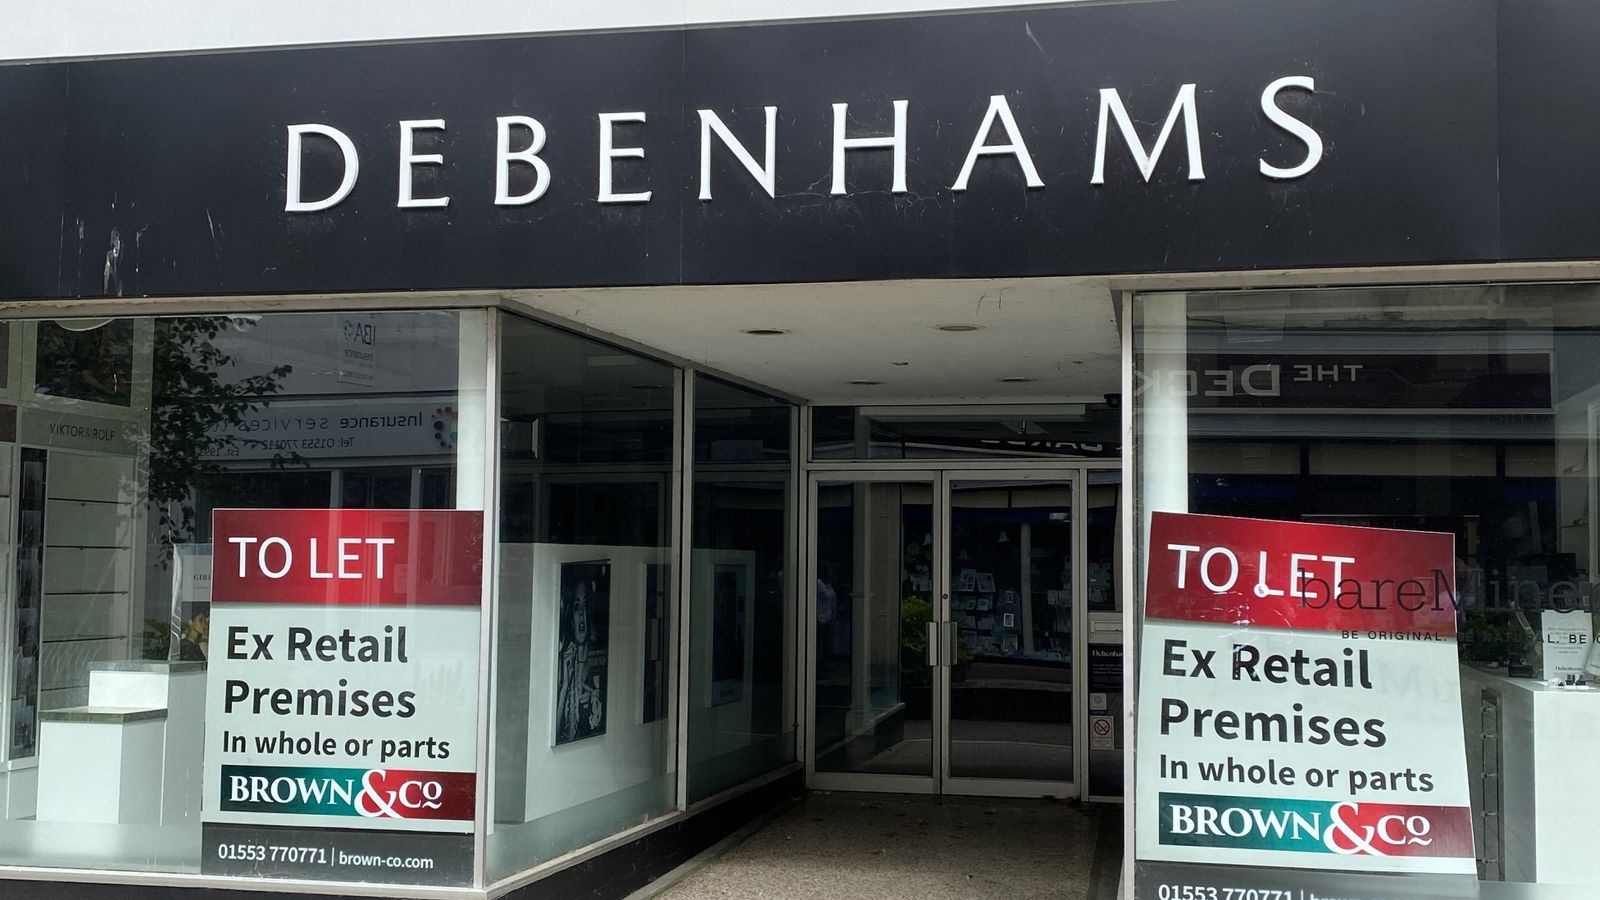 Sports Direct tycoon Mike Ashley reignites row over Debenhams collapse